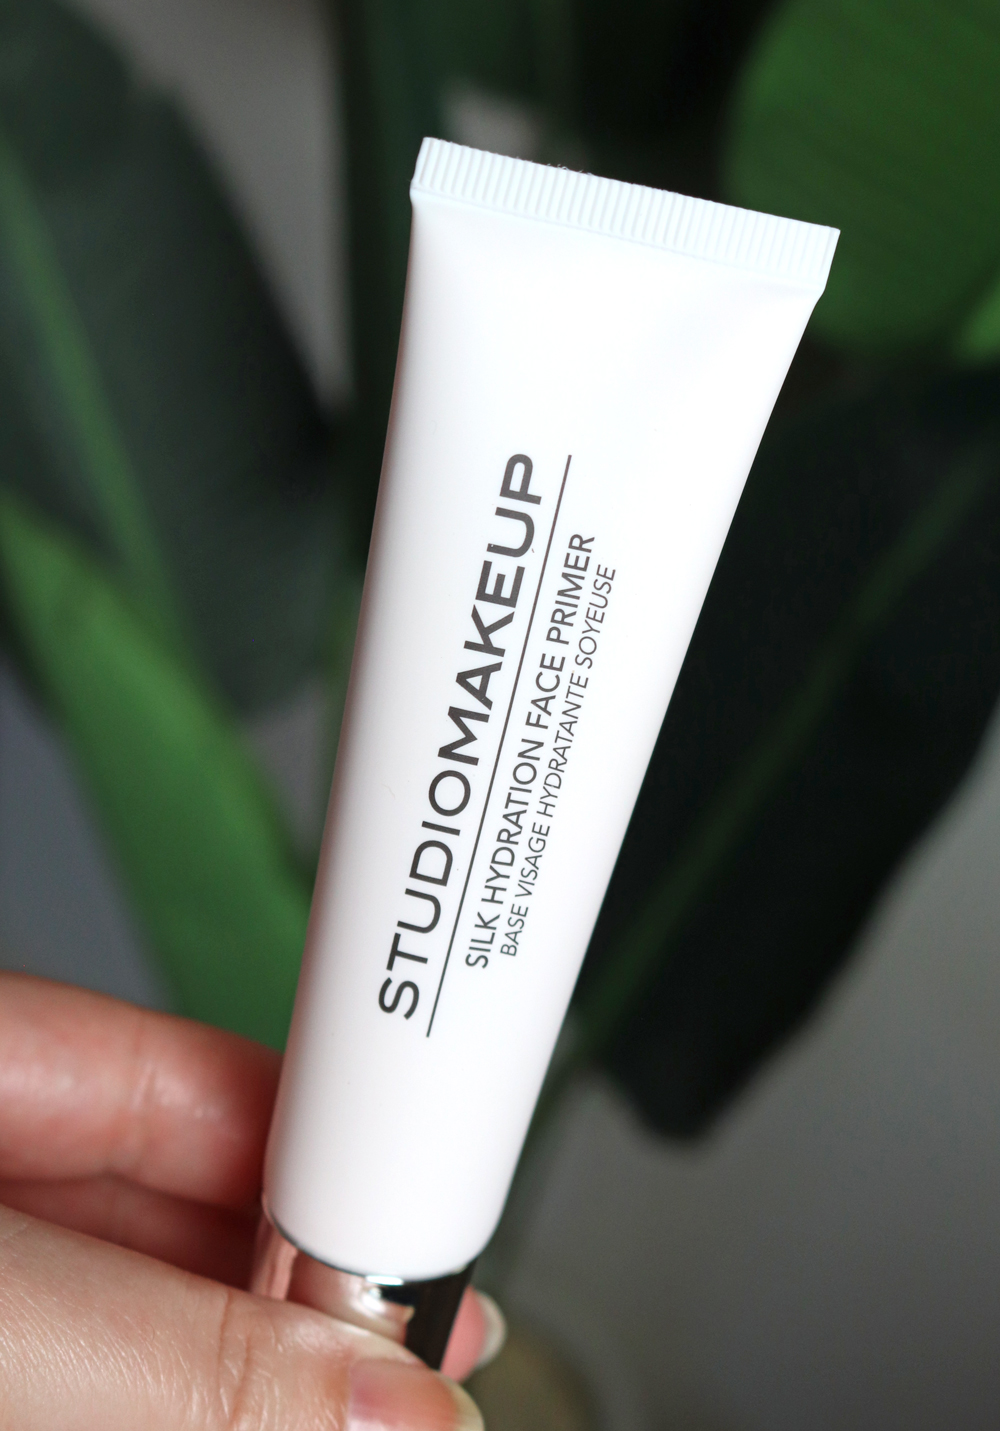 Studio Makeup Cruelty Free Face Primer Review and Giveaway